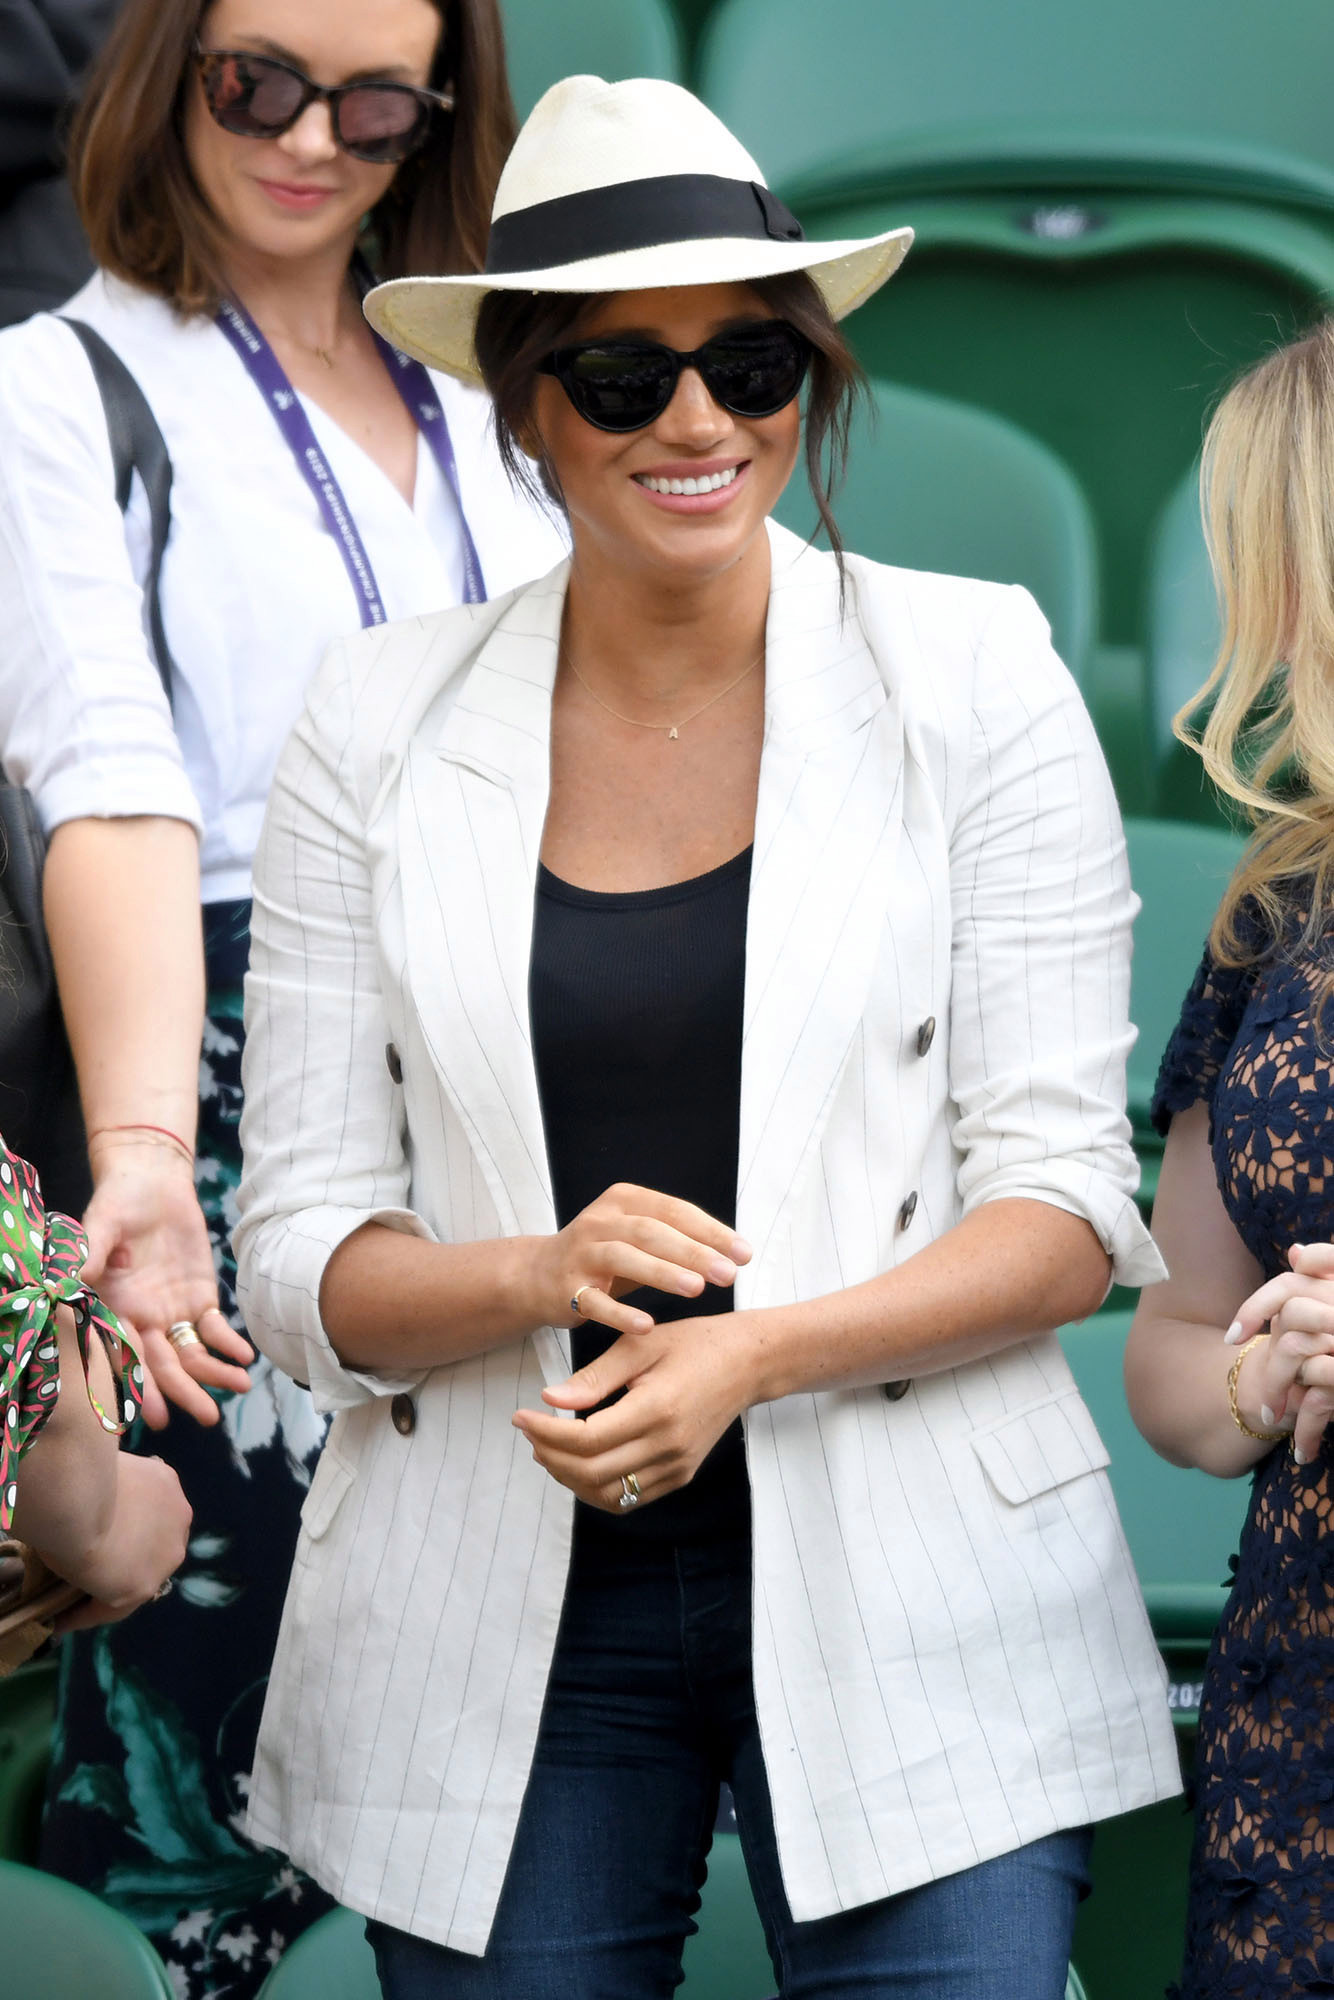 Meghan, Duchess of Sussex. Photo Source: Page Six.